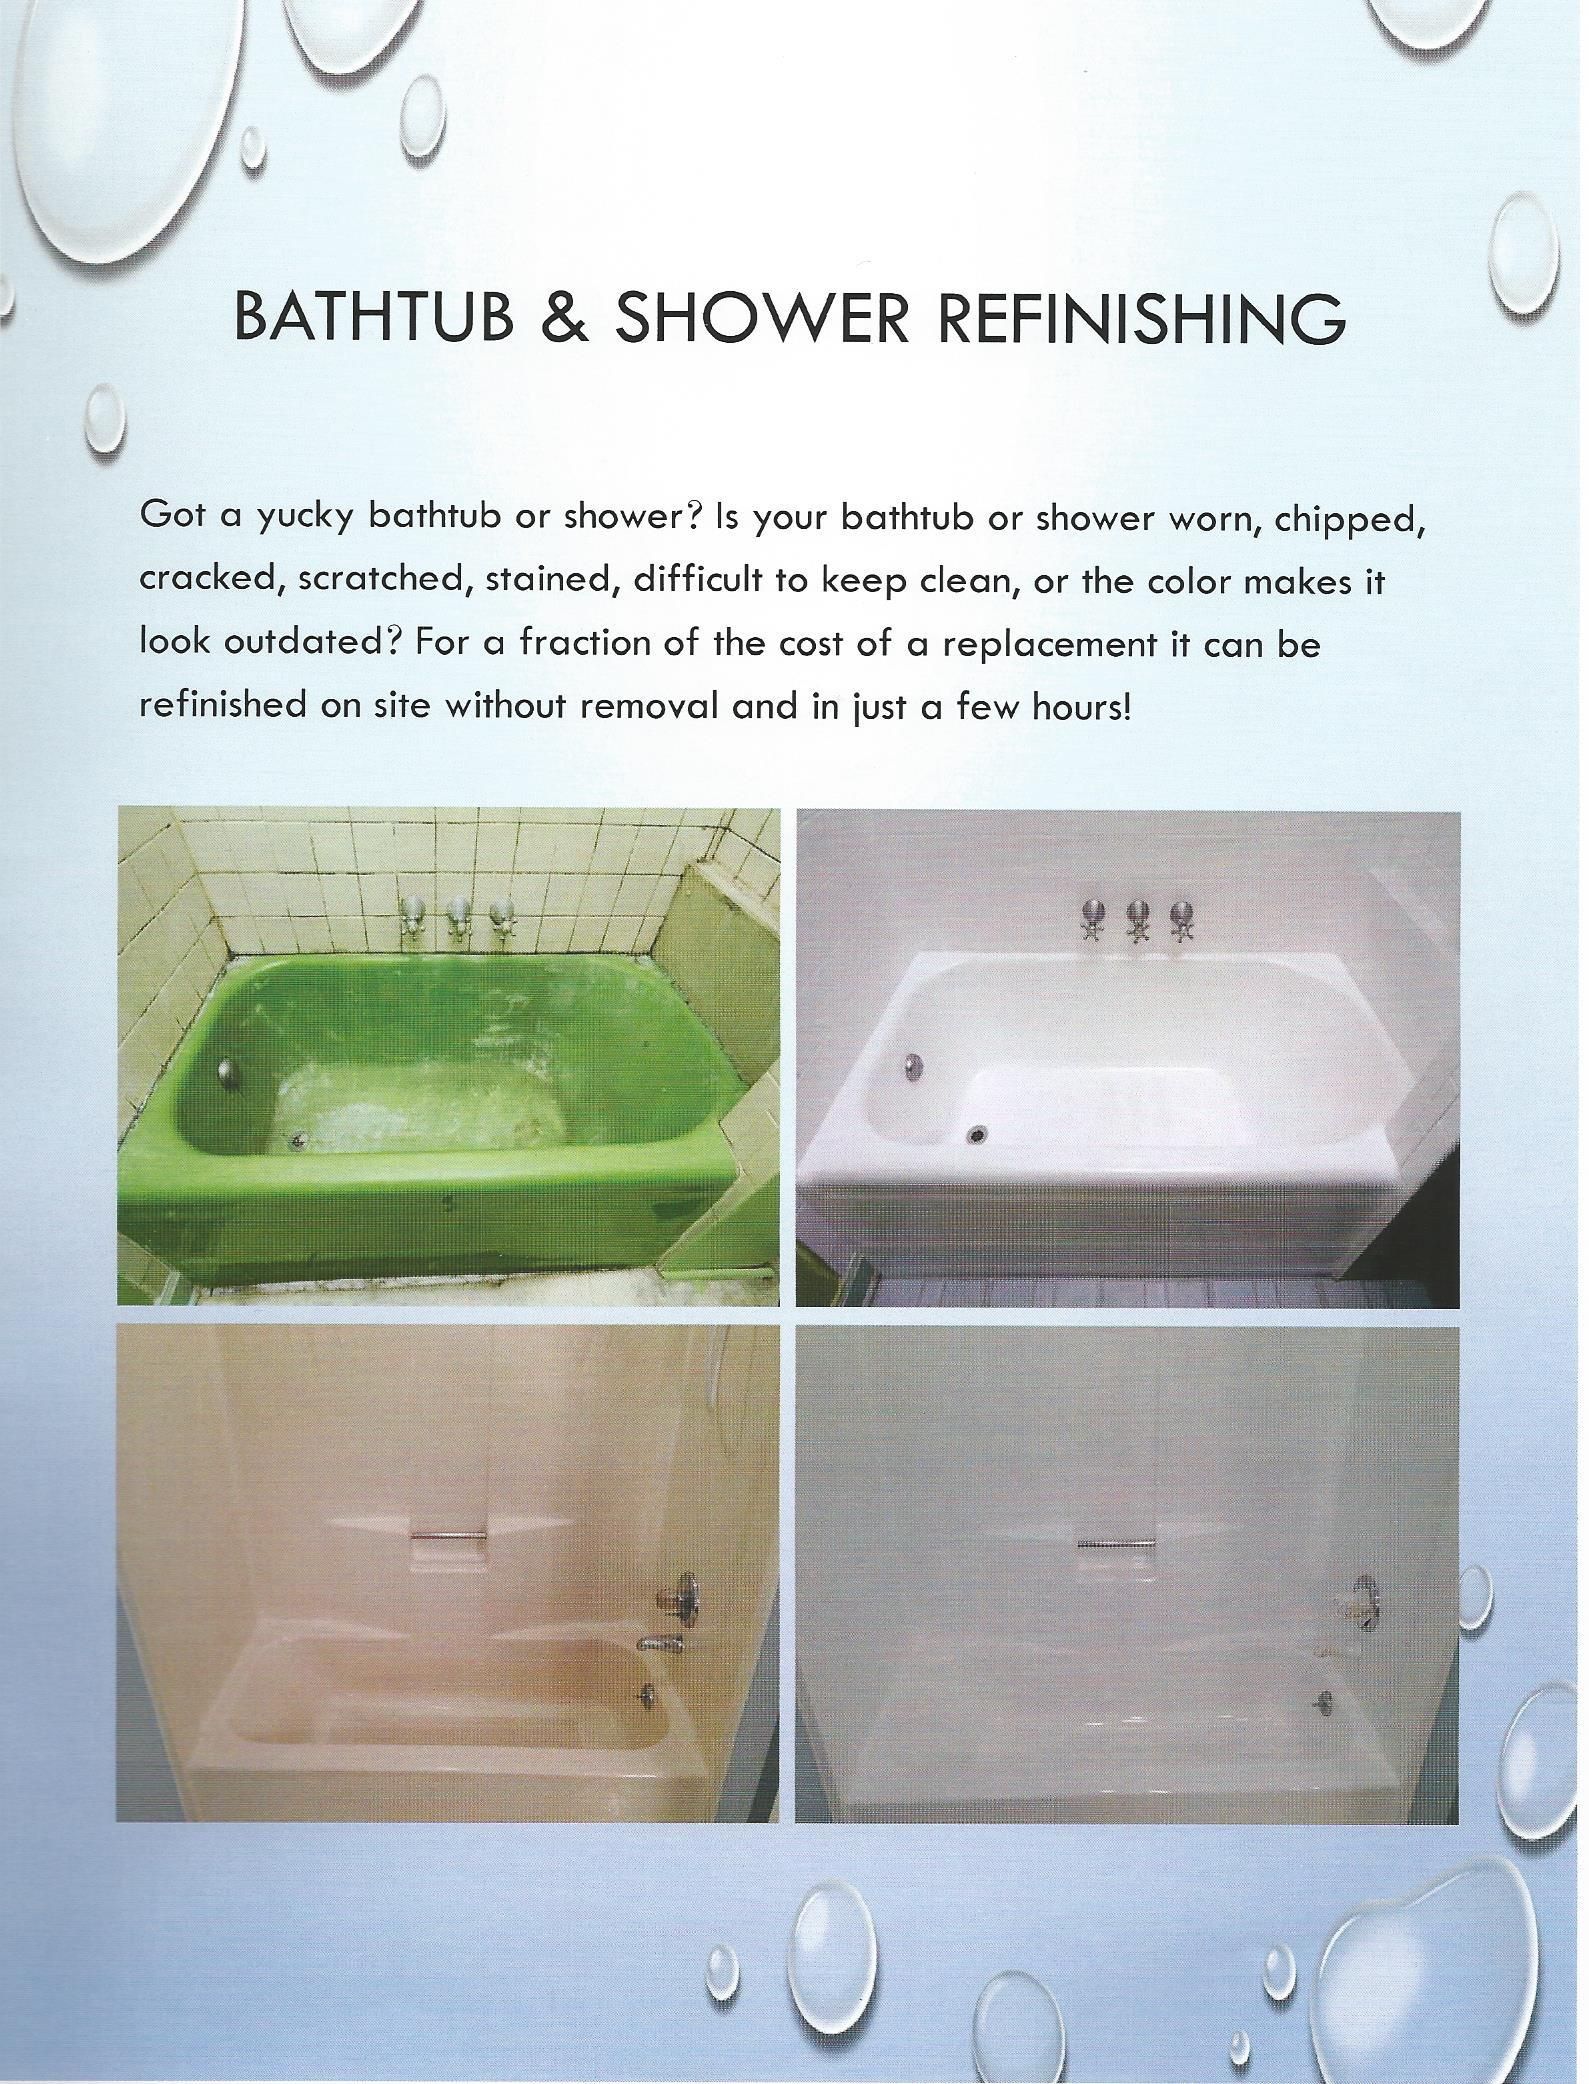 Make Your Old Tub Look Like New With Our Refinishing Process Triangle Nc Keep It Cleaner Bathtub Shower Bathtub